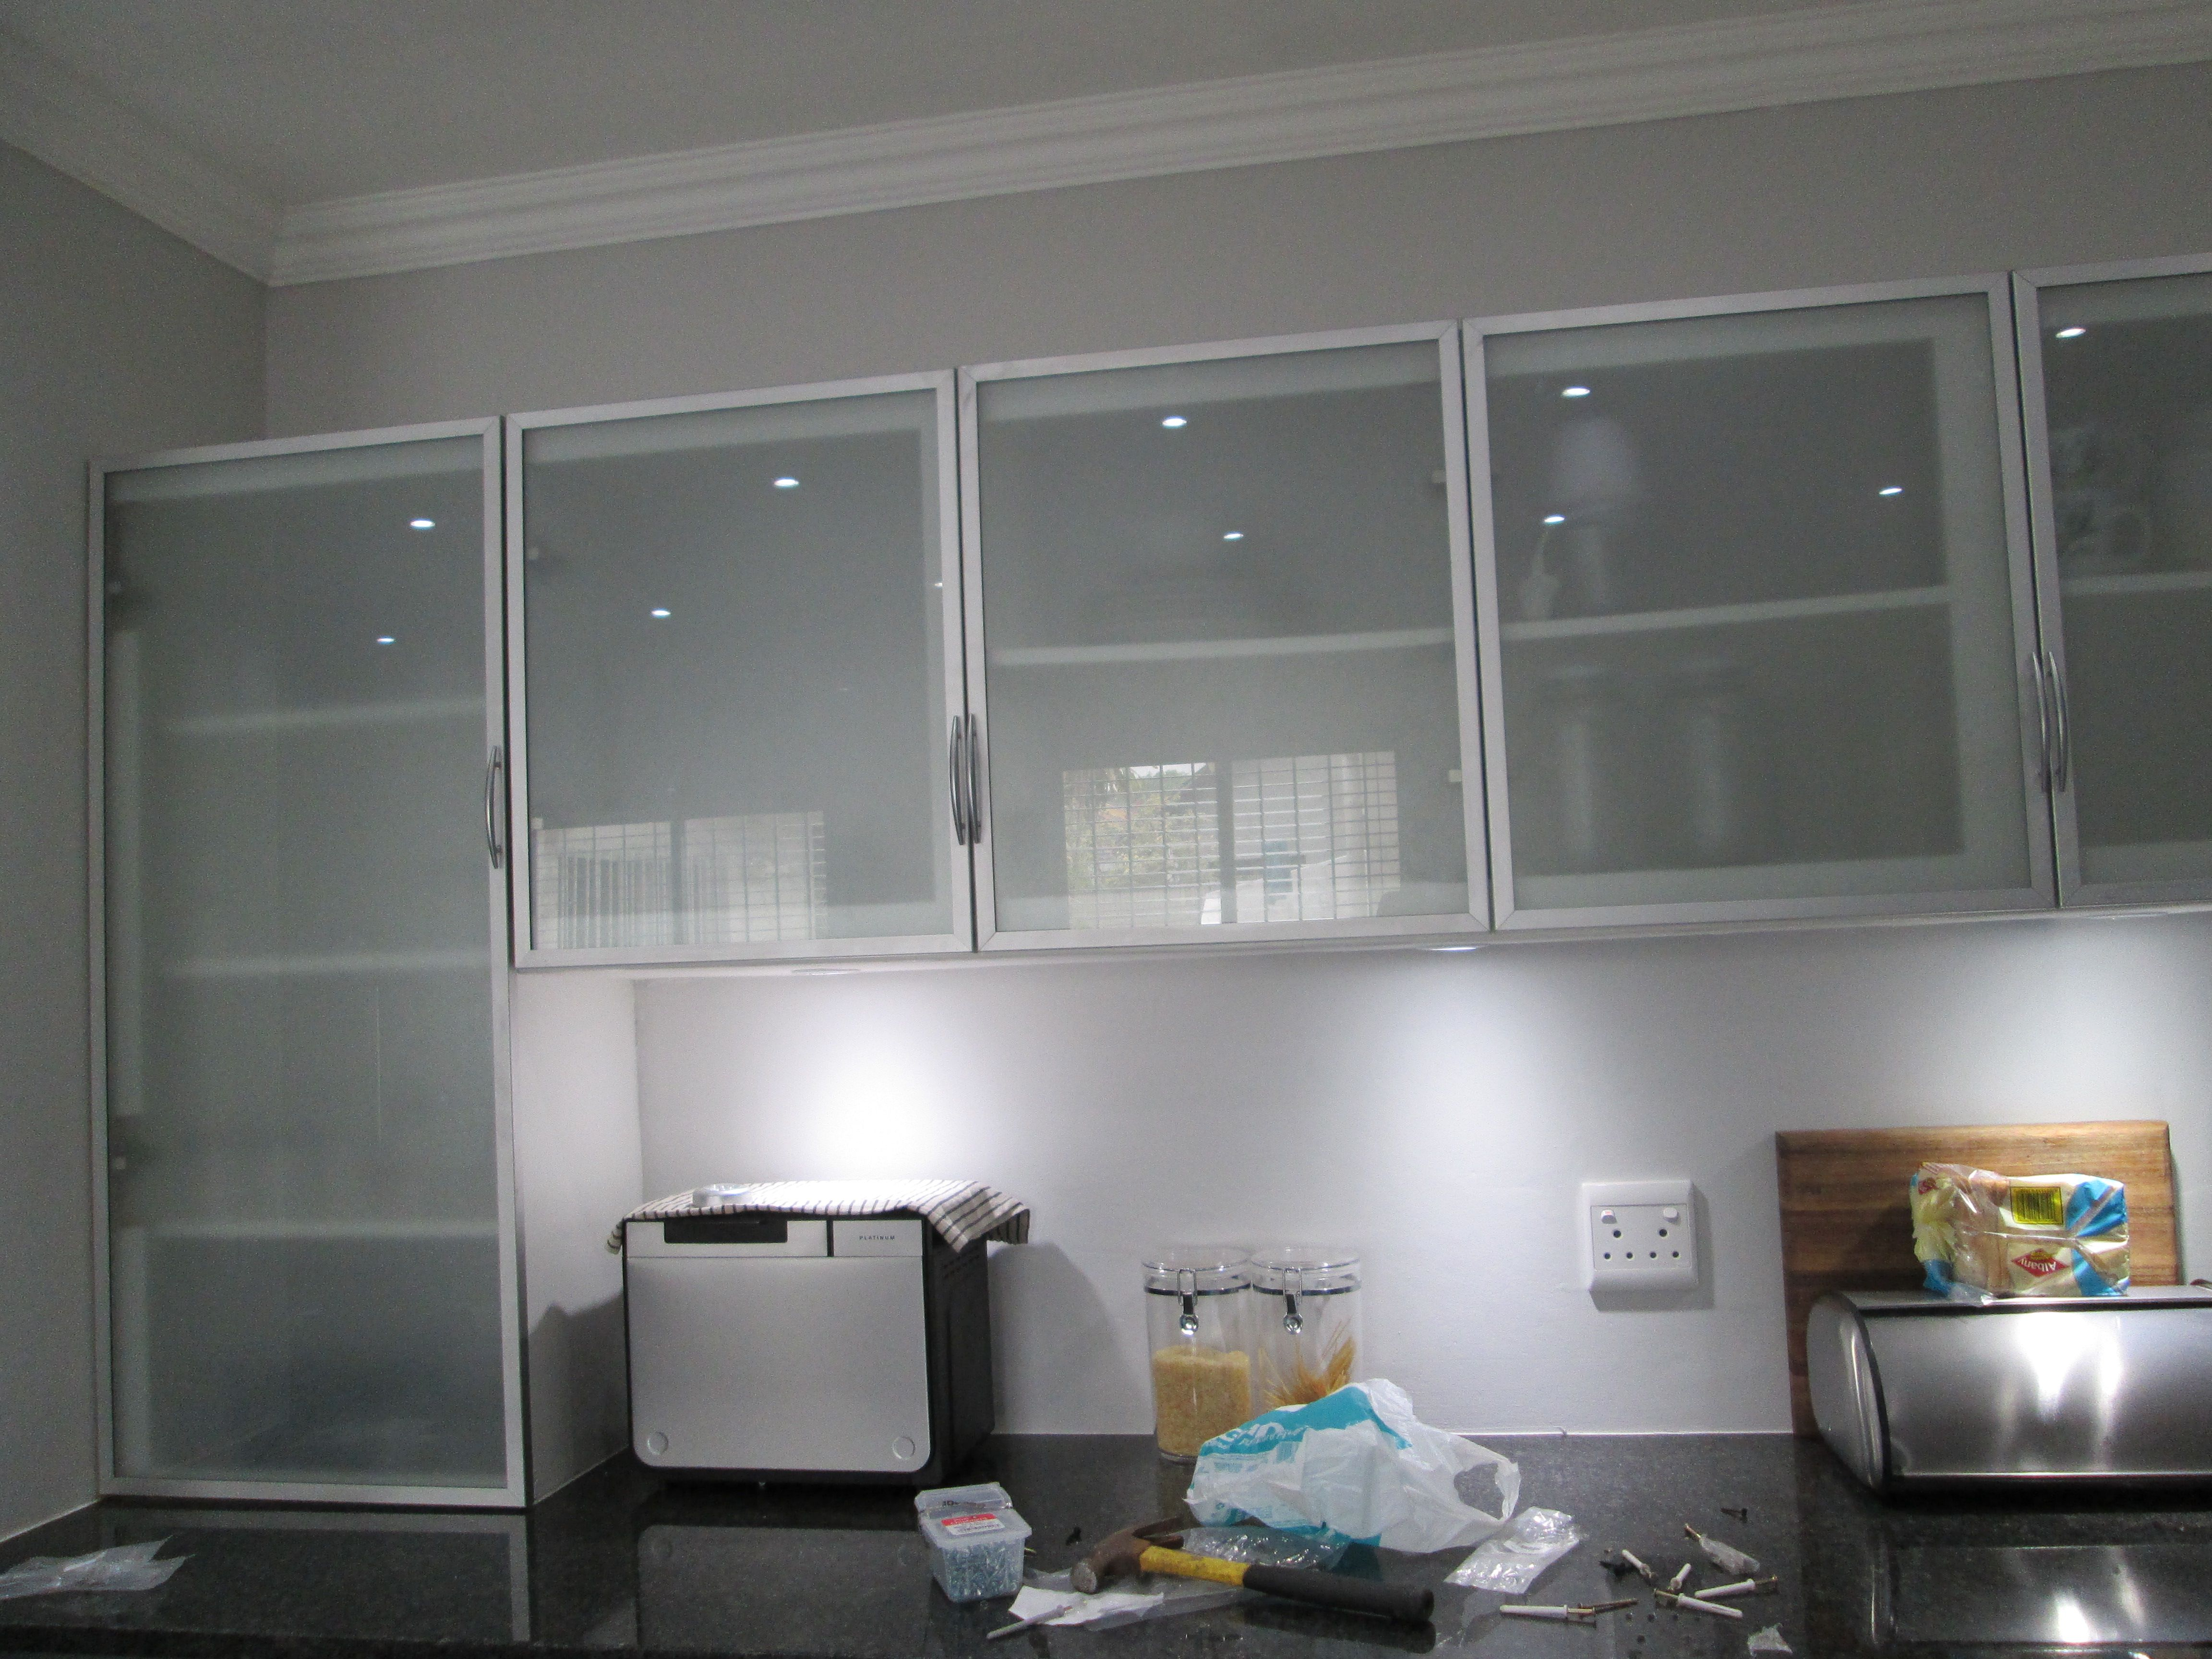 Frosted Glass Kitchen Cabinet Doors Remodeling Small This Is Incorporating Aluminium Frame